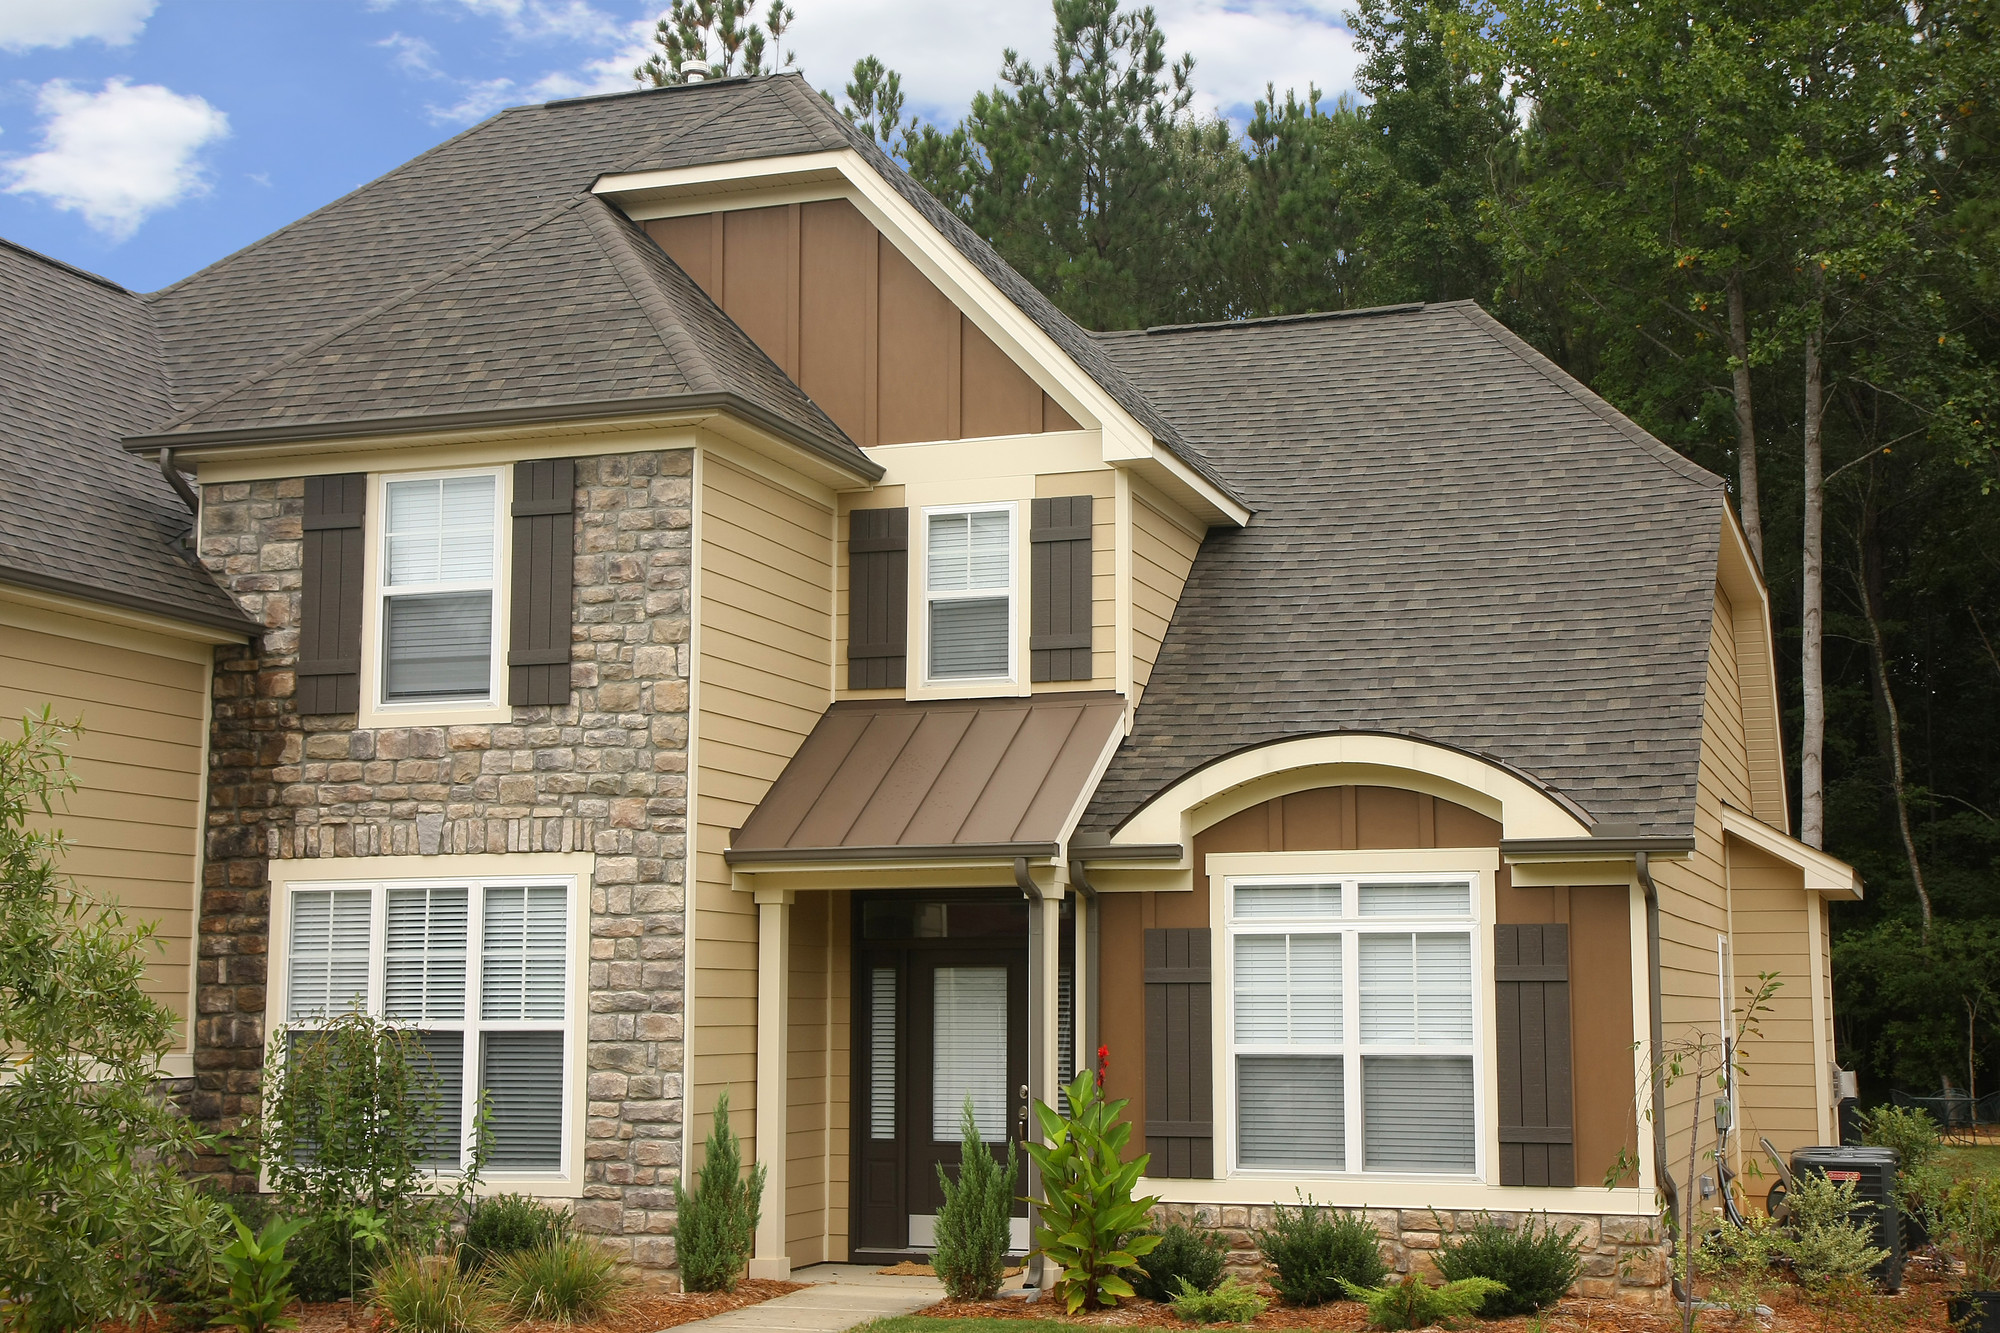 Types Of House Siding Of Home Siding Wood Different Moderate Cost For Wood Types Of Siding For